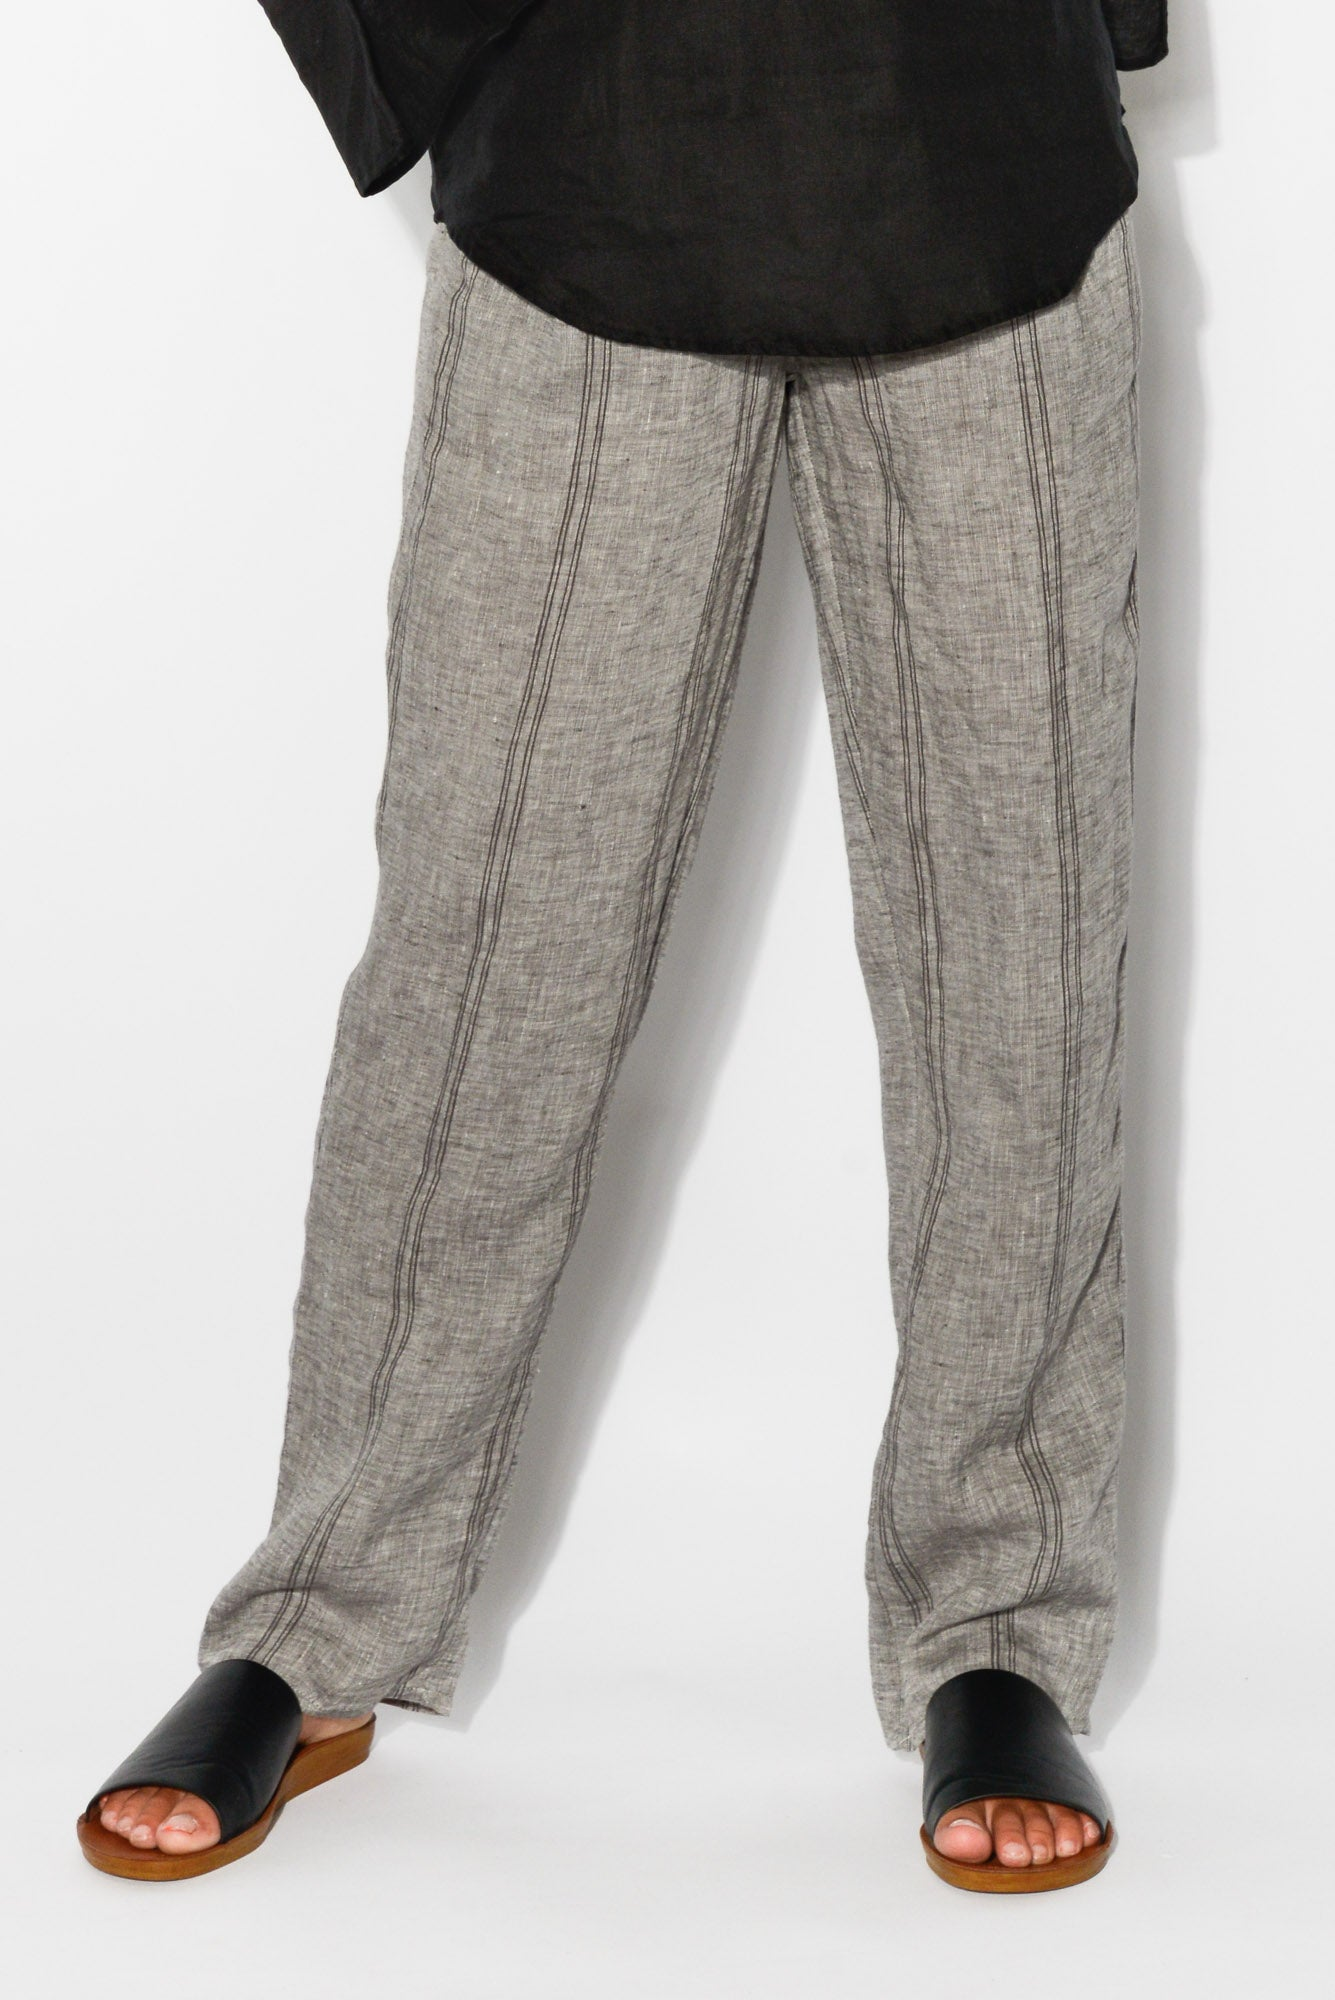 Rue Grey Stripe Linen Pant - Blue Bungalow